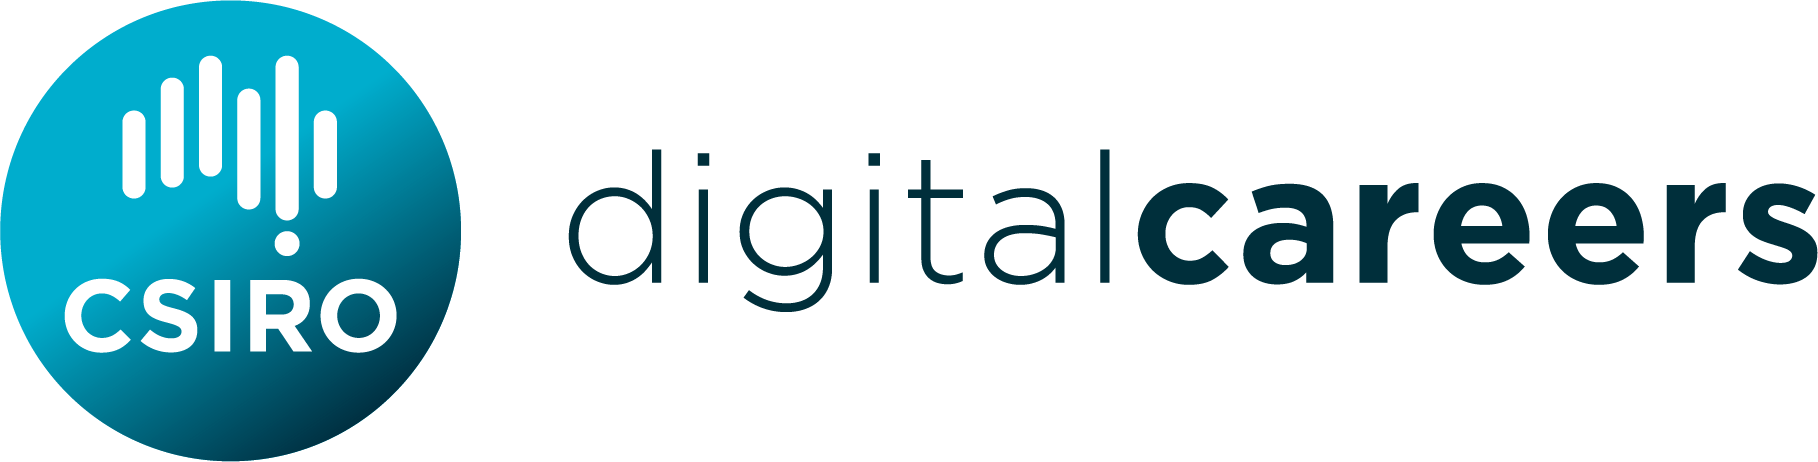 Digital careers logo